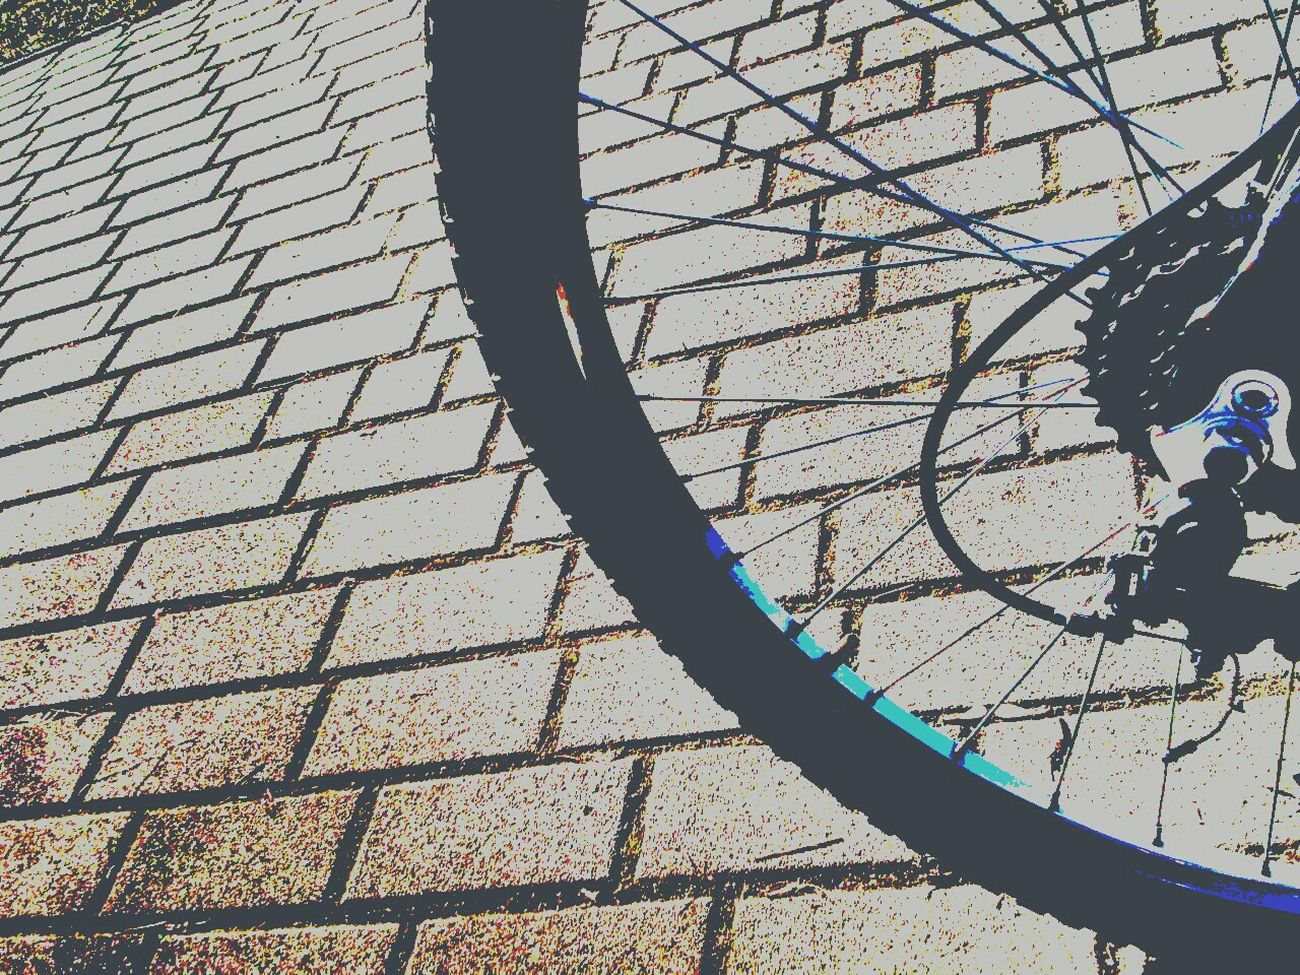 Bike Bike Wheel Excercising Biking Little Break Polarized Effect Eyeem Biker